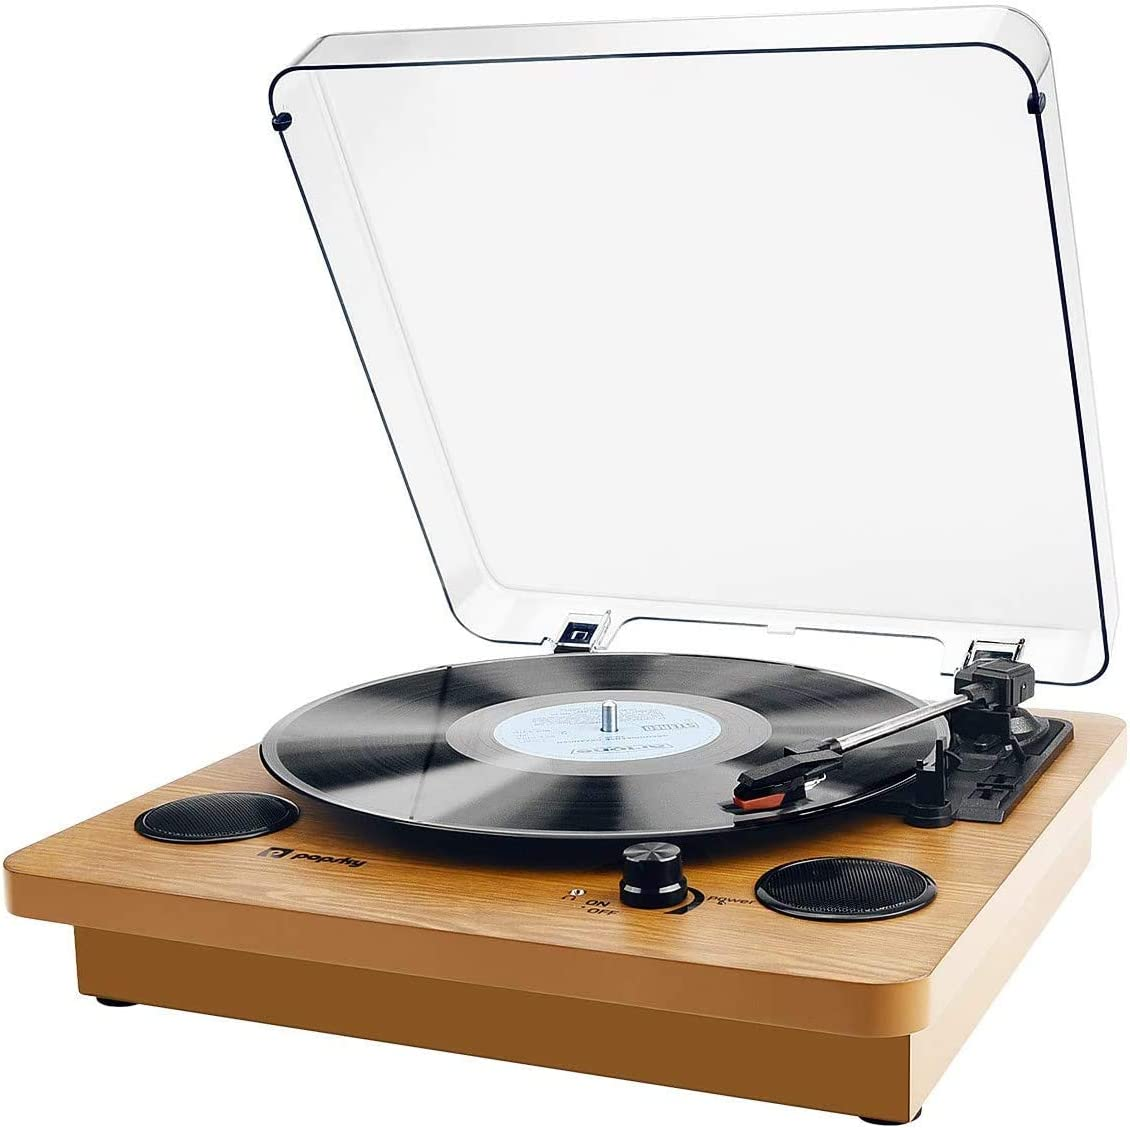 Record Player, Popsky Vintage Bluetooth Vinyl Player with Stereo Speakers, 3 Speed Belt-Drive LP Turntable, Vinyl to MP3 Recording, RCA Output, 3.5mm Aux Input